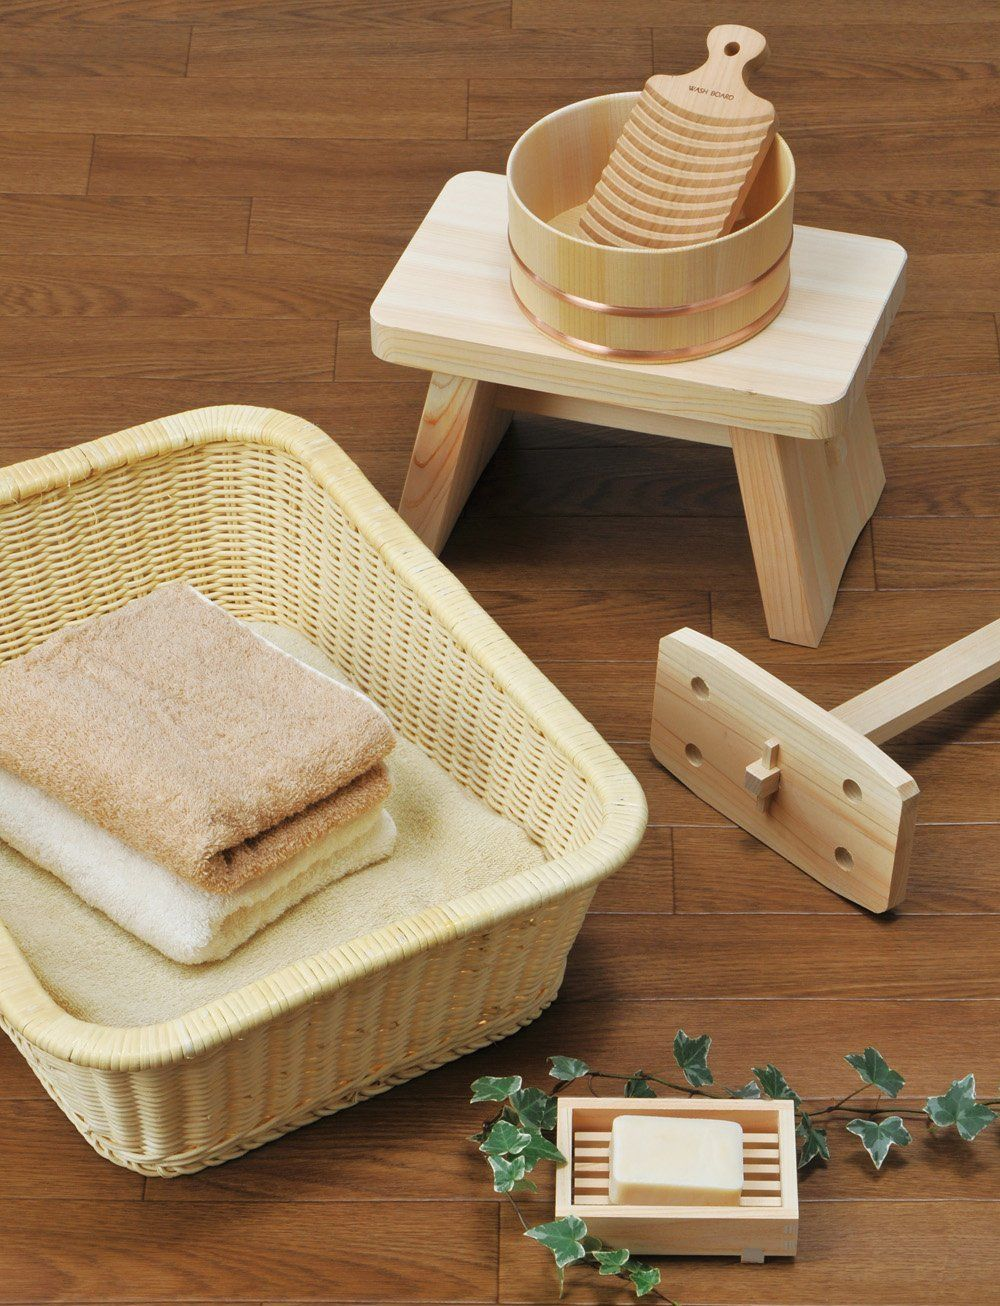 Amazon.com - Bath Chair of Japanese Cypress(Hinoki) Bath Goods ...